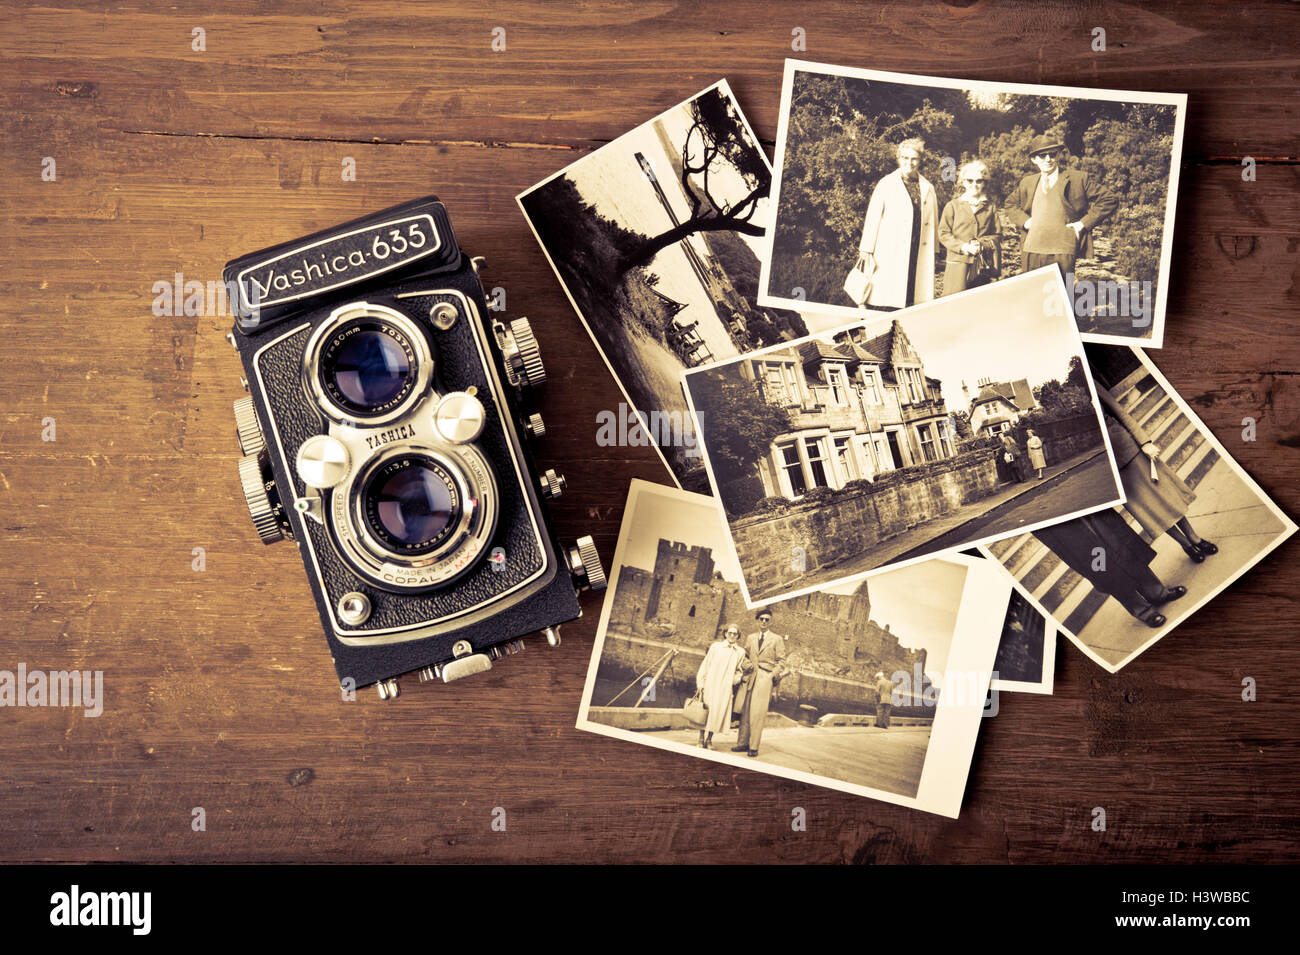 vintage Yashica camera and photographs - Stock Image